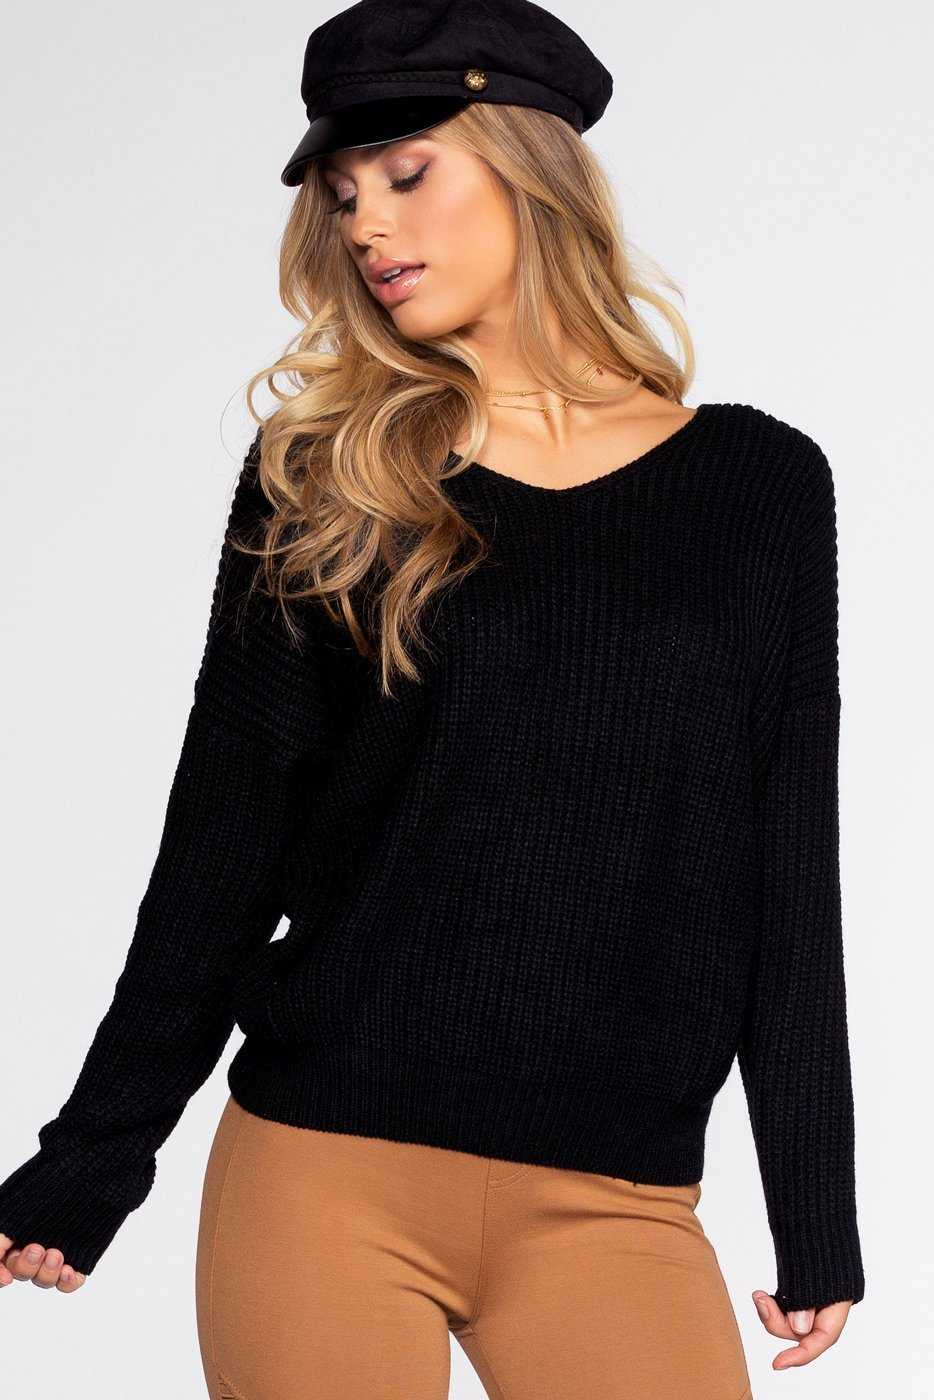 Sweaters - Twist And Shout Sweater - Black